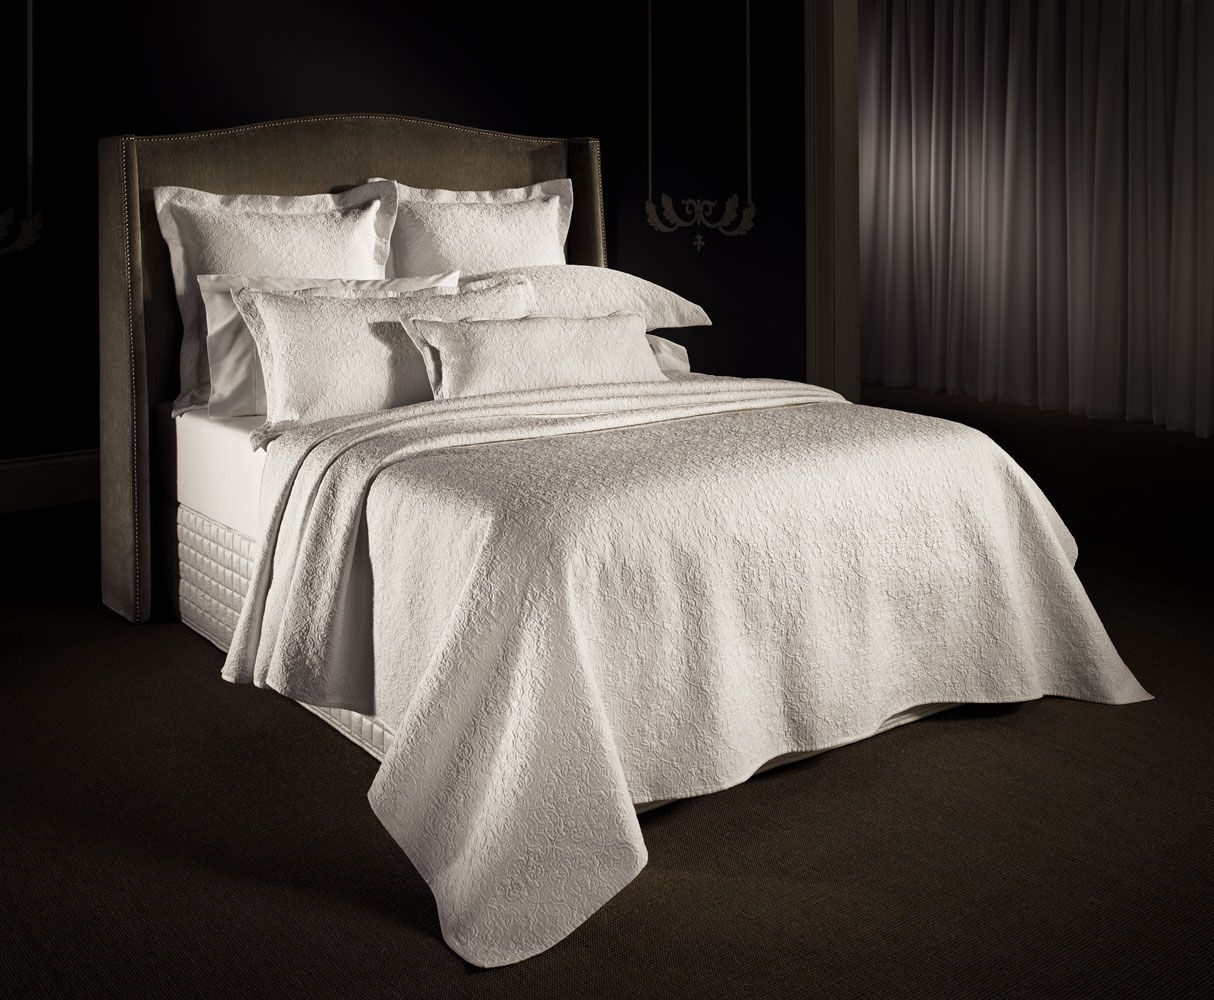 Lawlor White Intricated Quilted Bed Cover And Shams 300